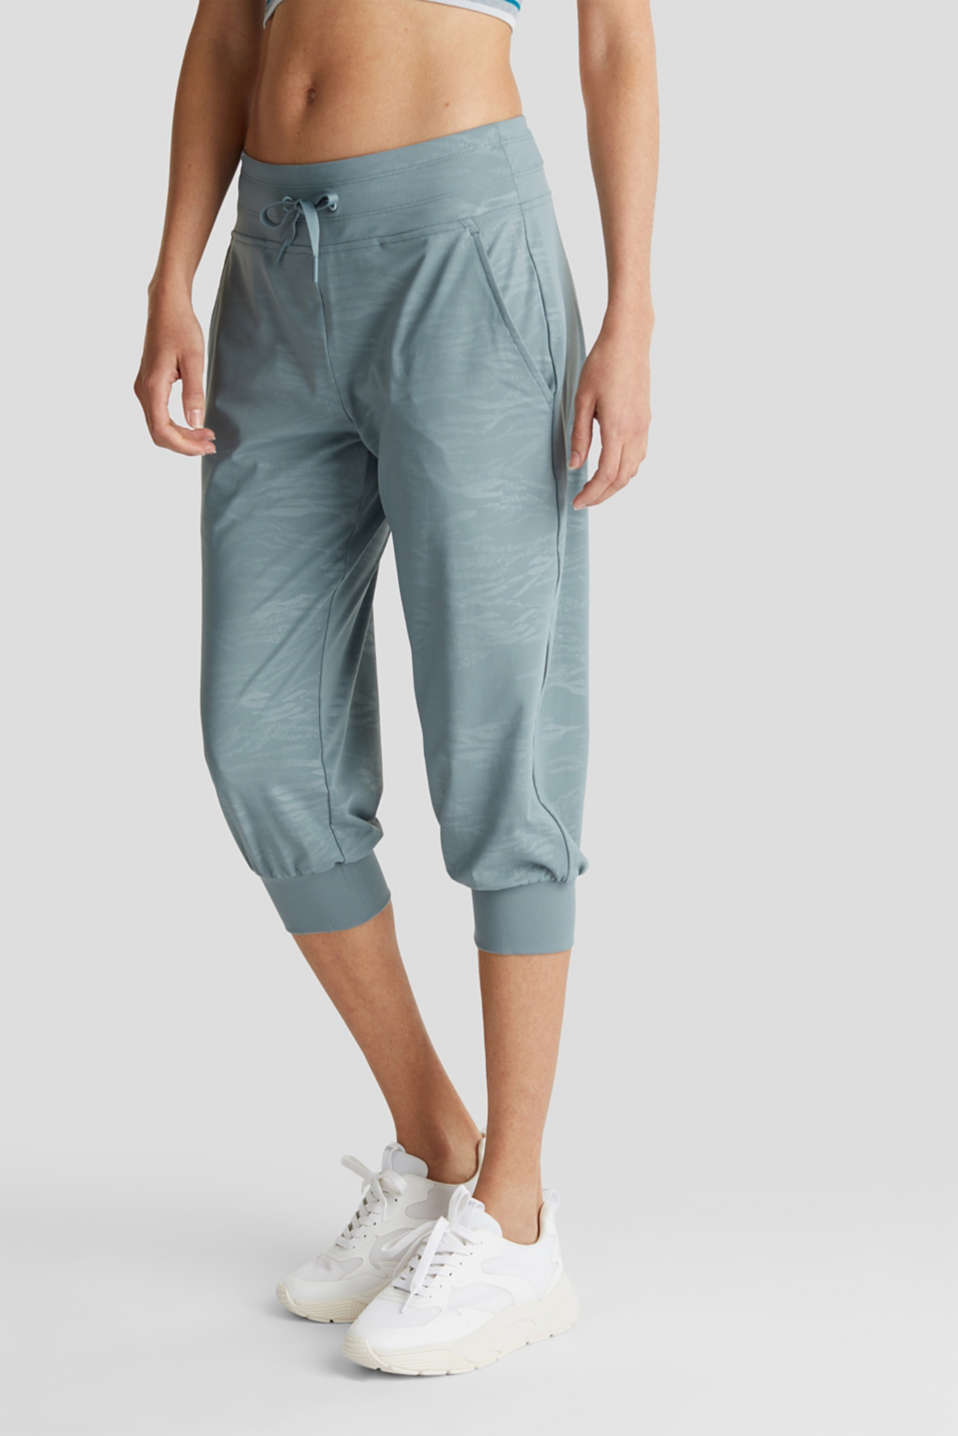 Esprit - E-DRY jersey trousers with a print